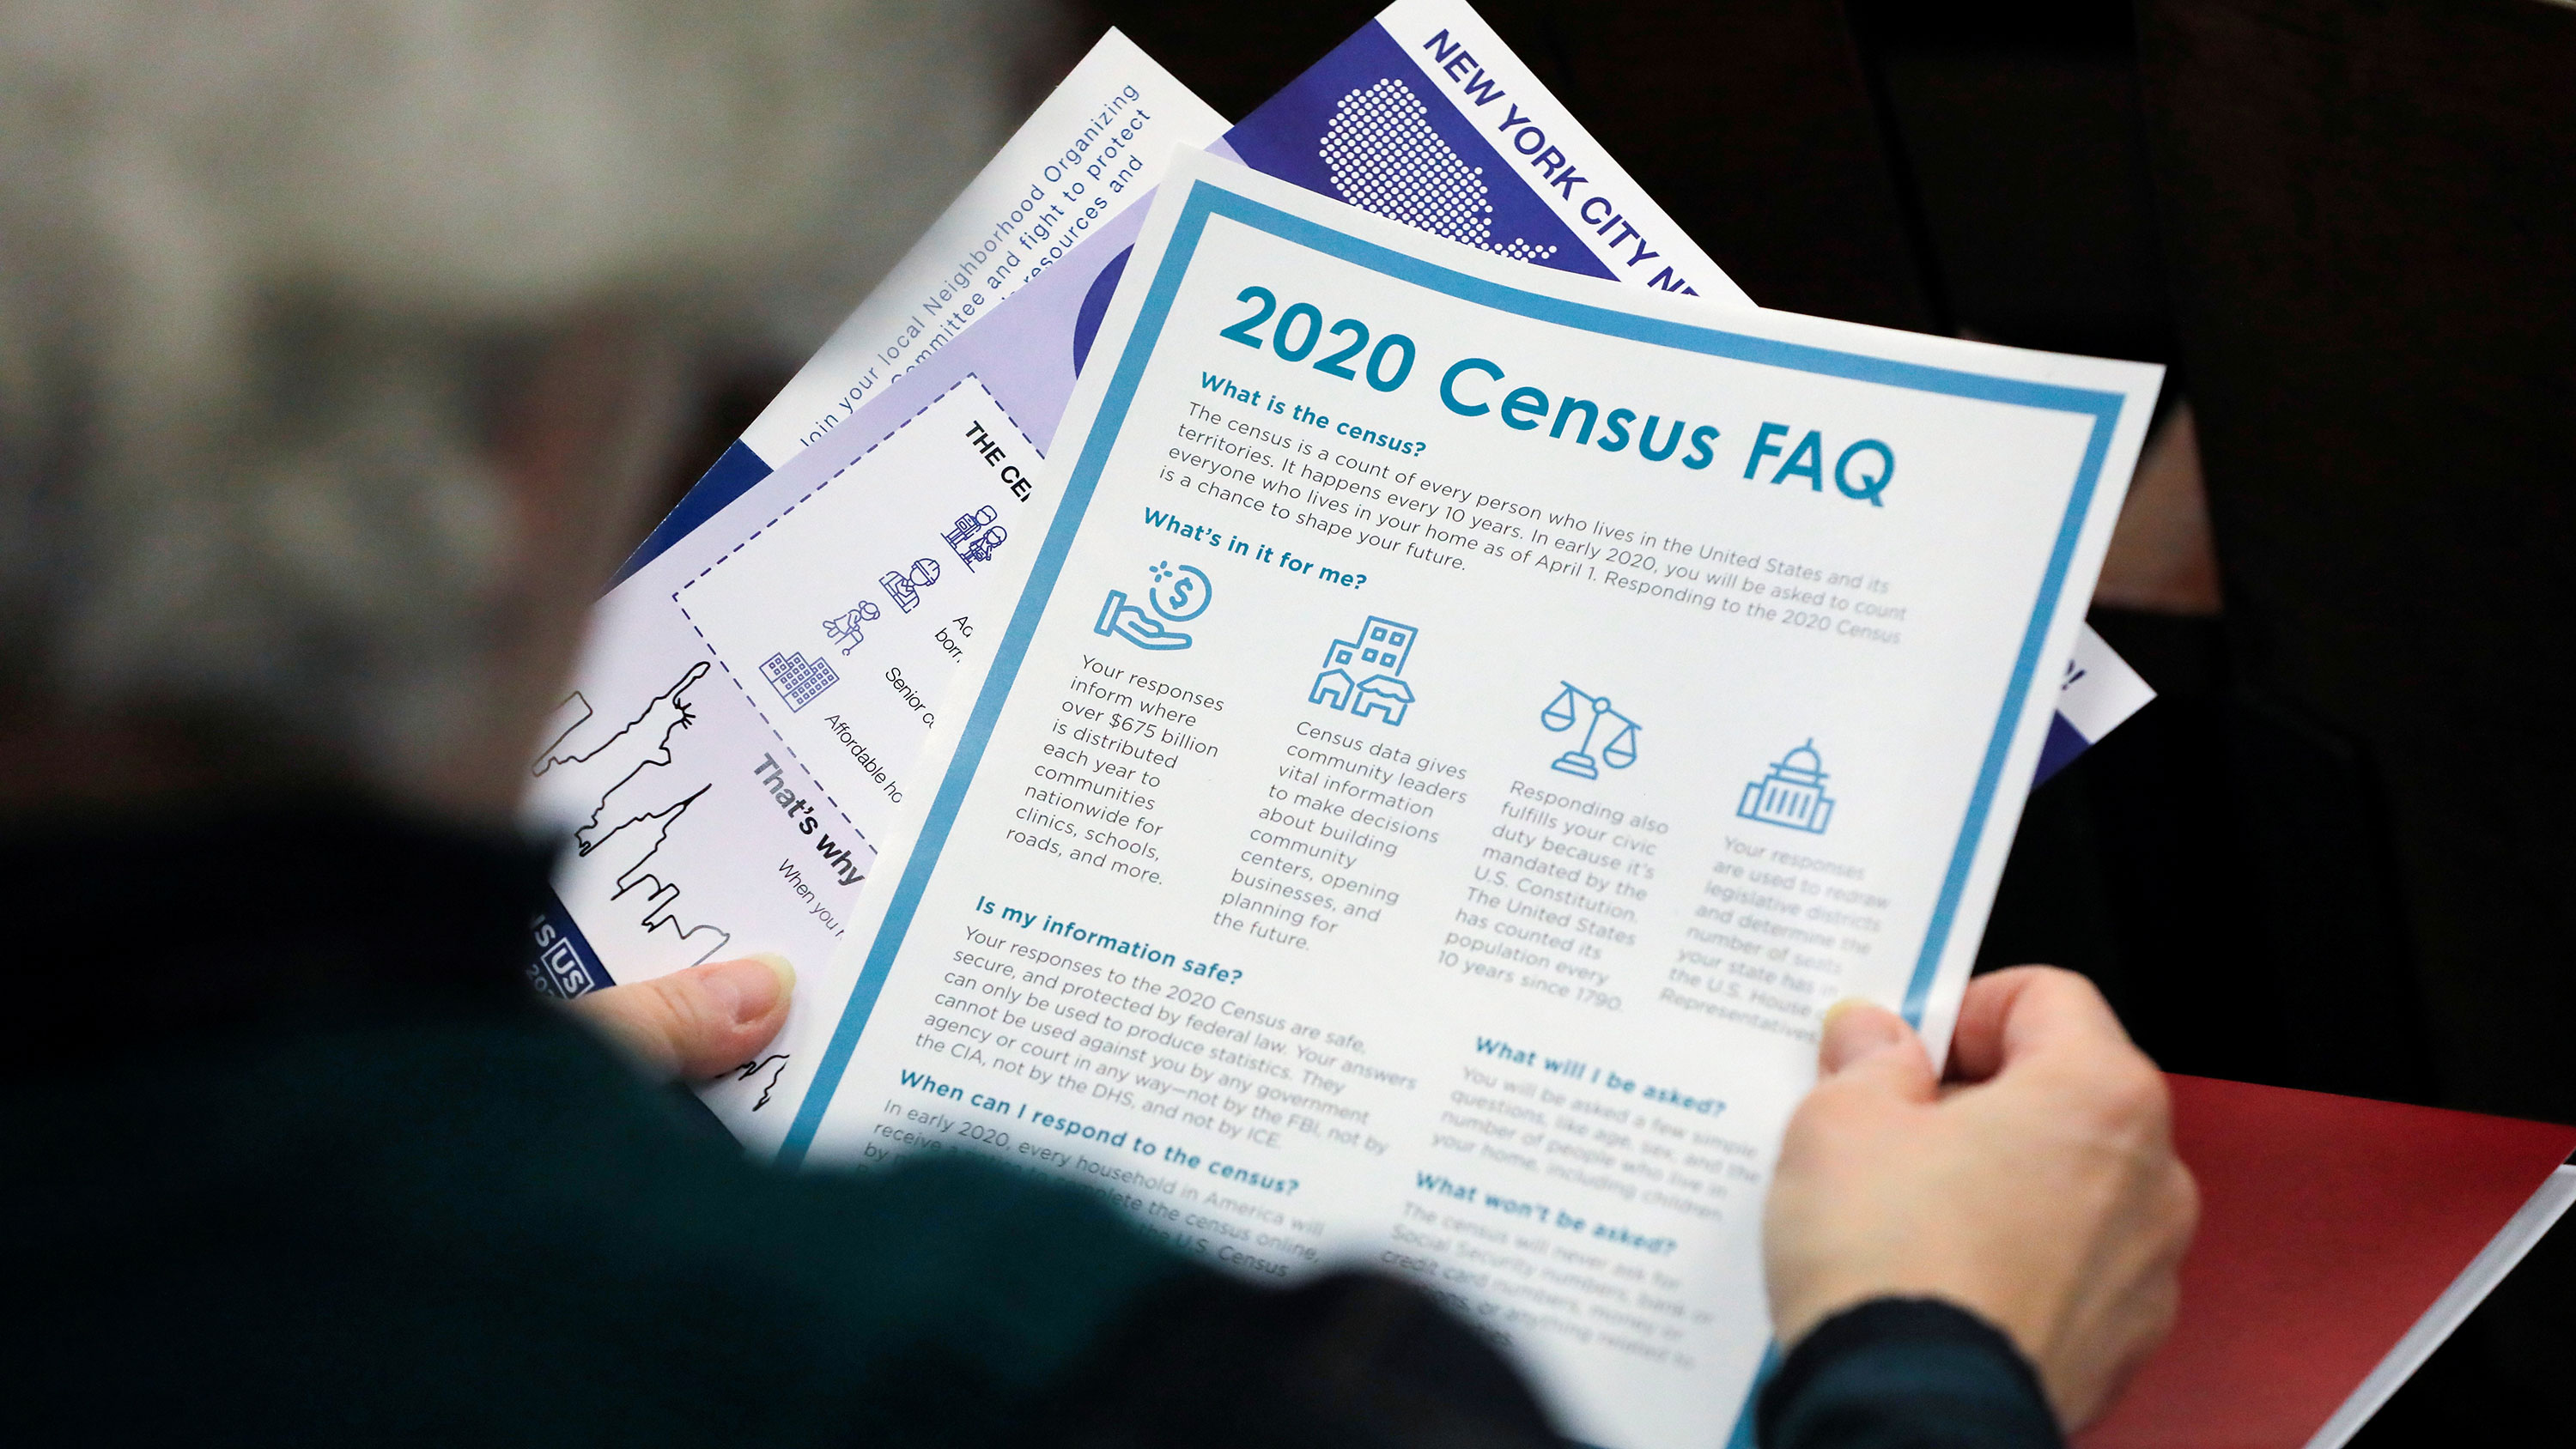 Census officials face challenge of tallying population in half the time they expected